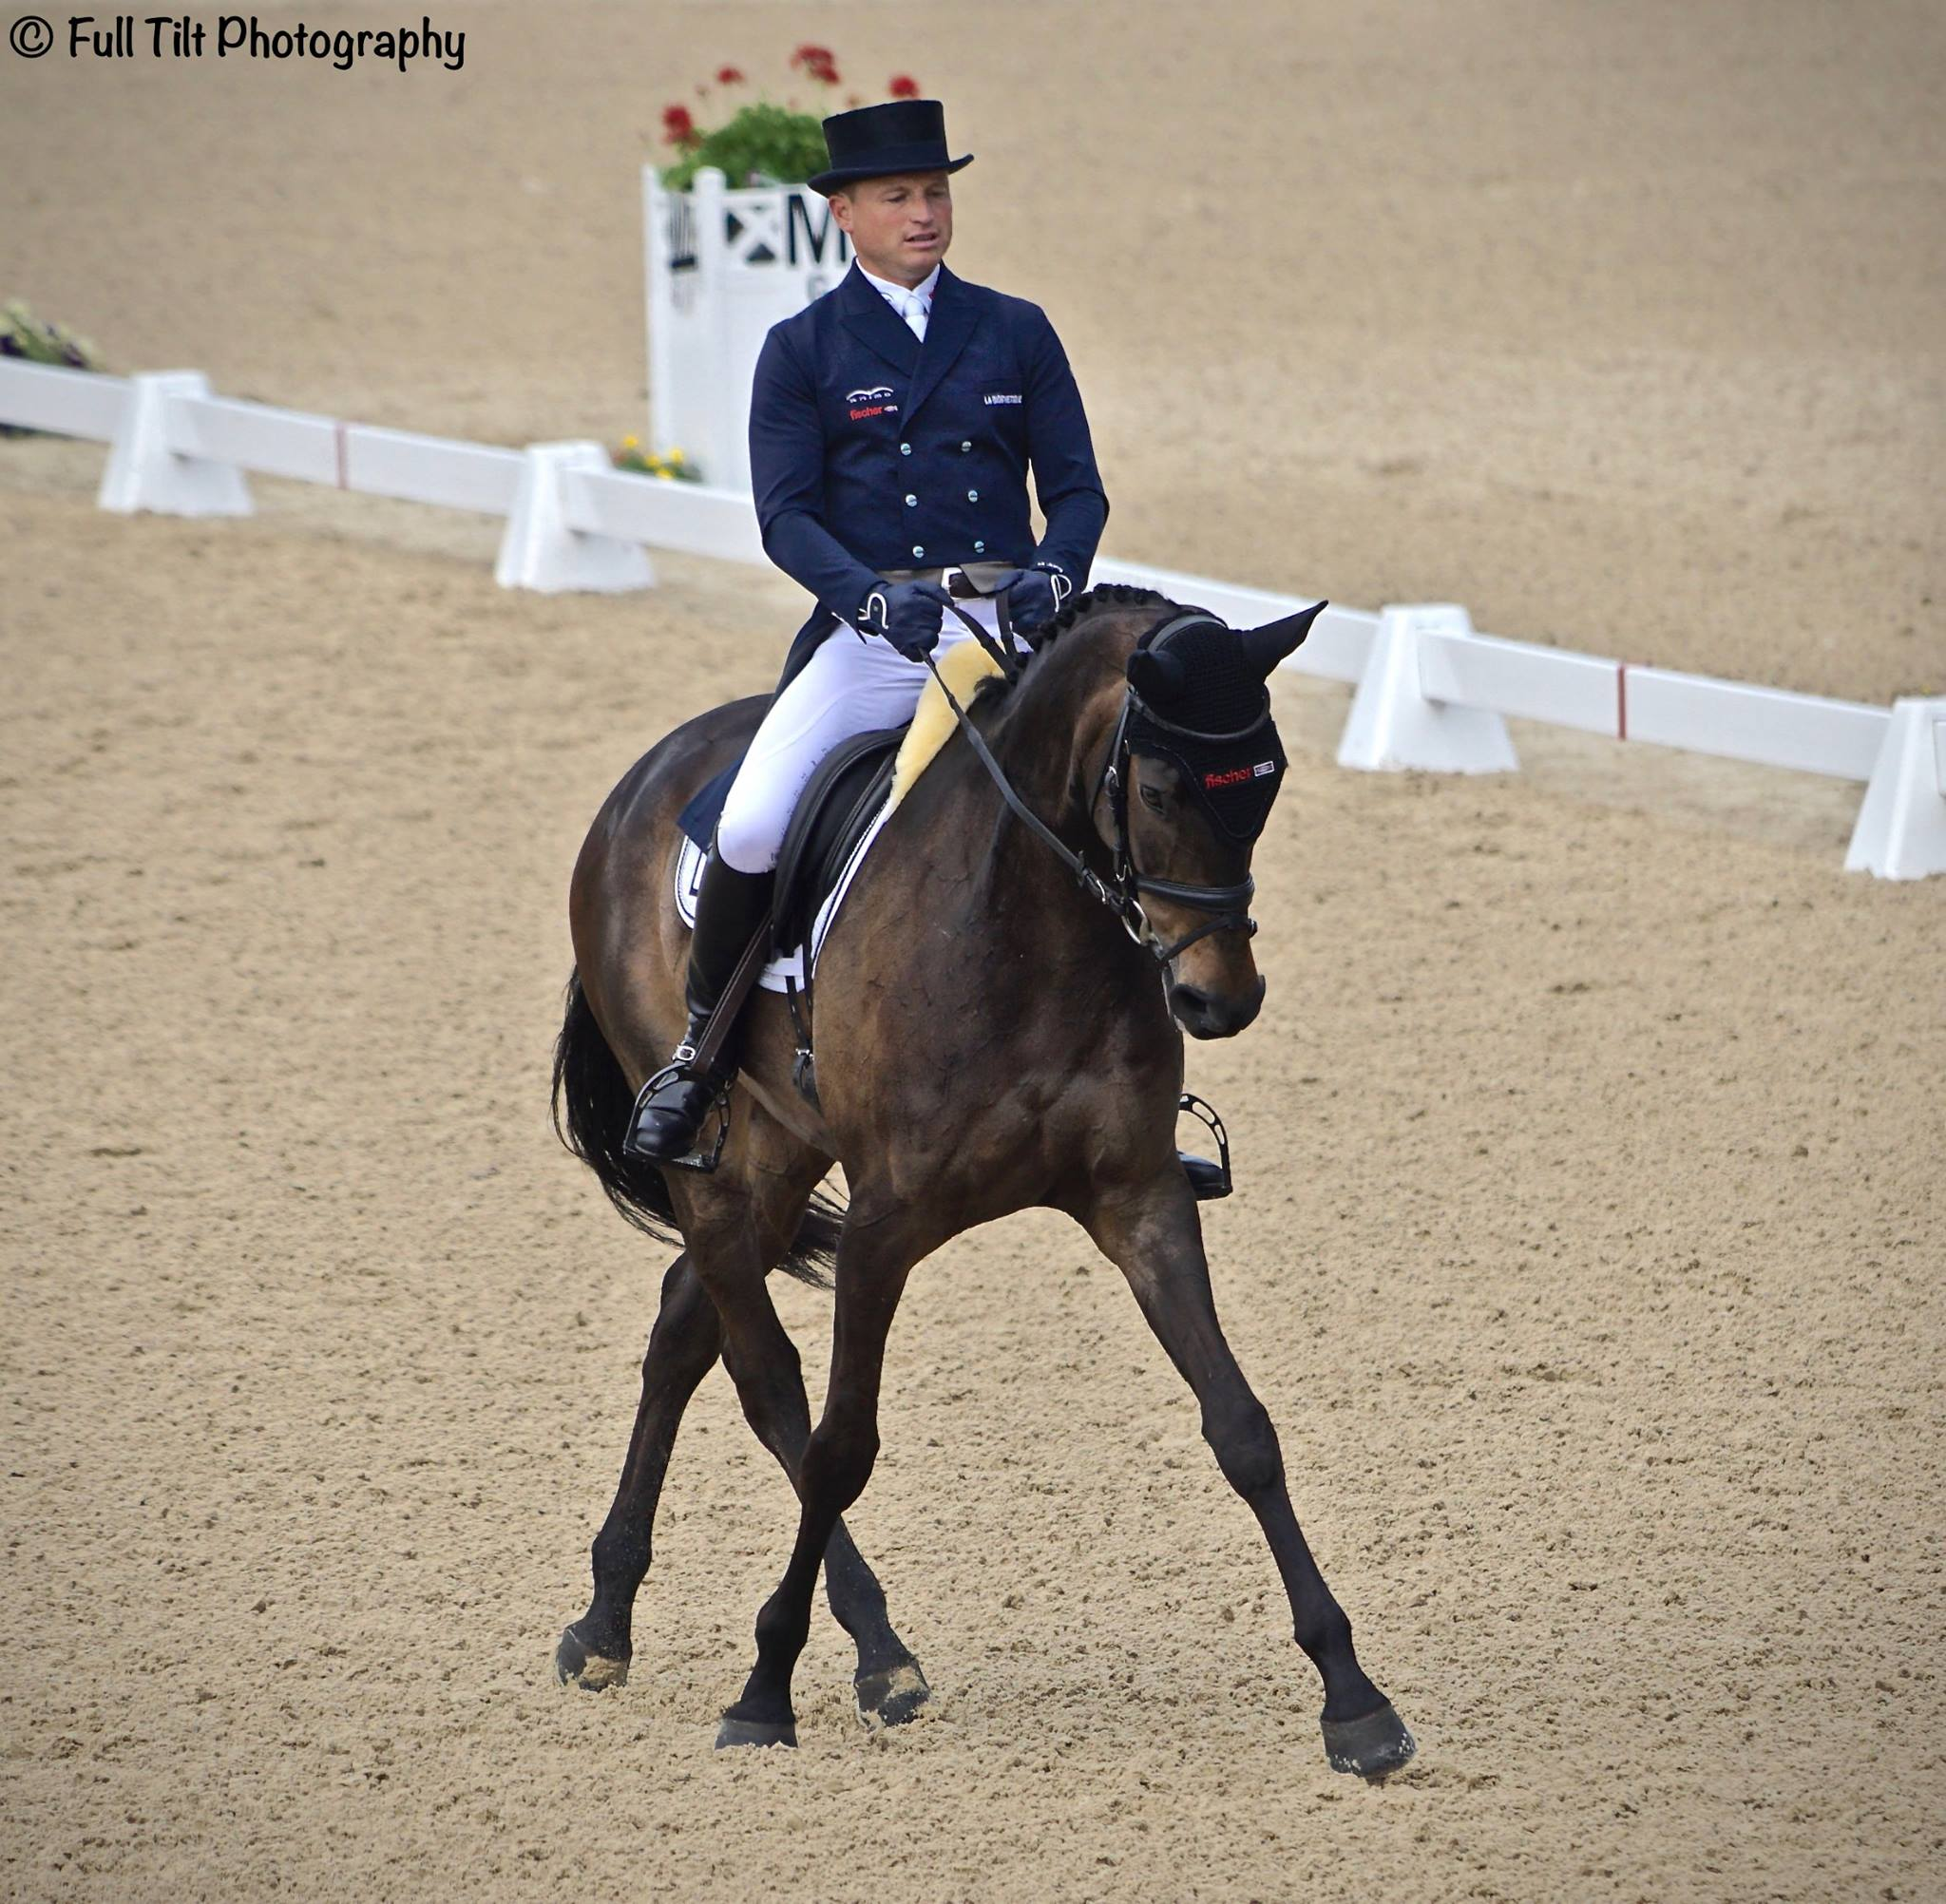 Micheal Jung half pass Dressage